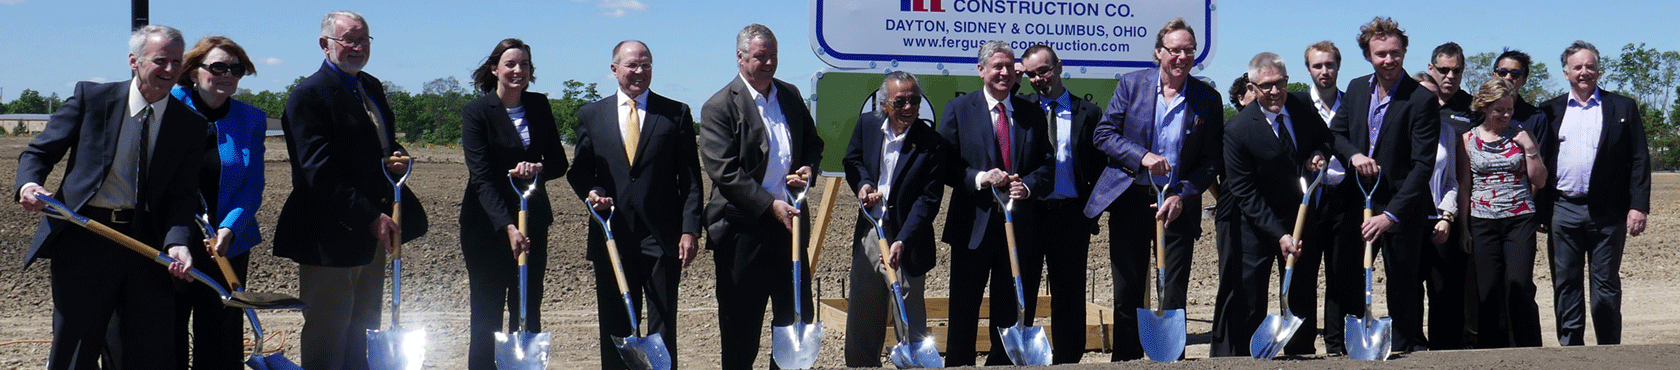 Group posing with shovels at future facility site